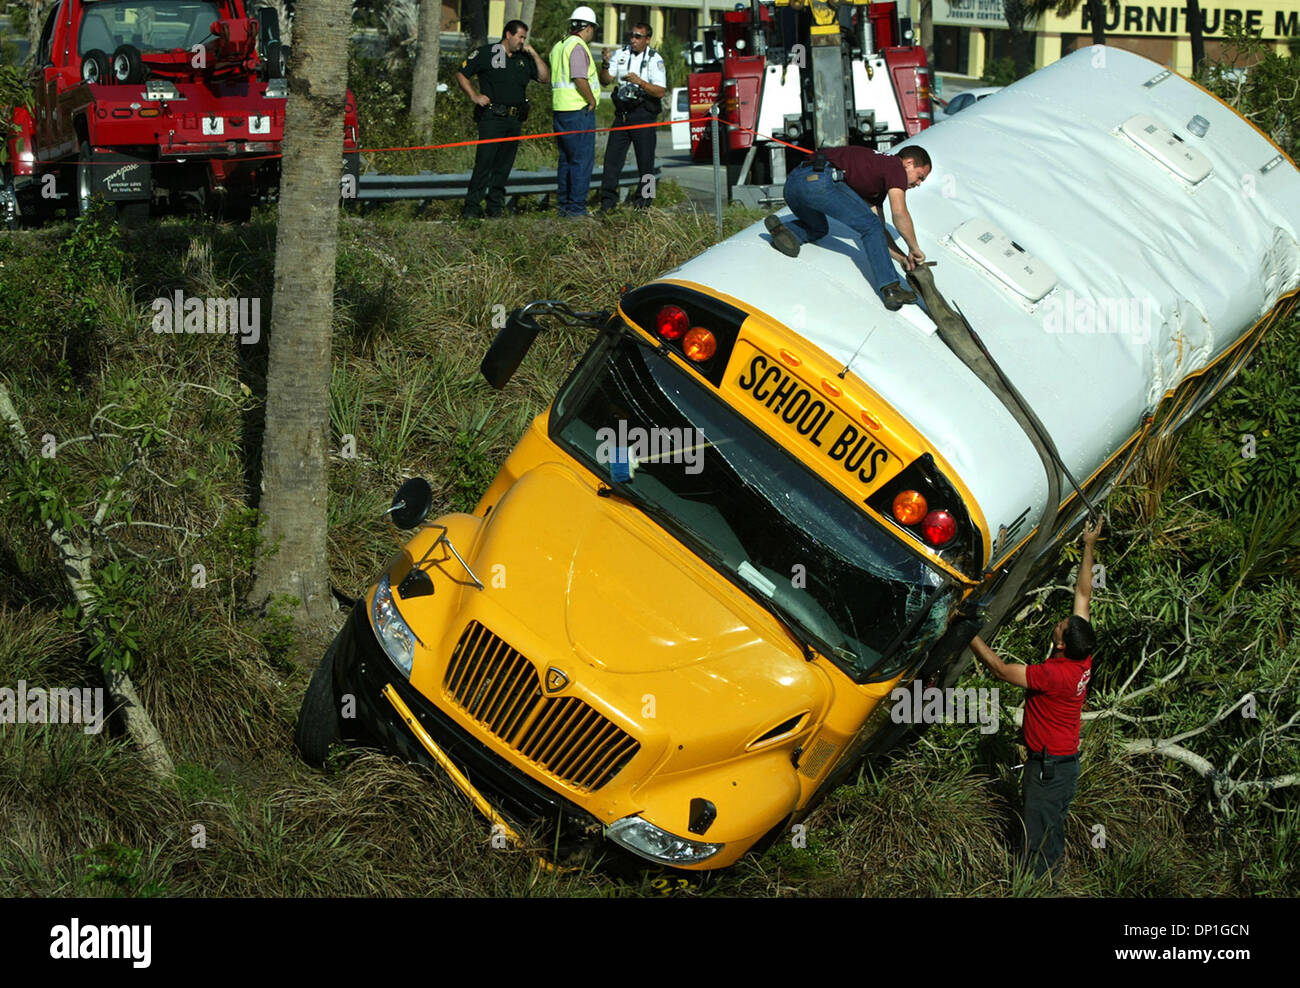 May 01, 2006; Ft. Pierce, FL, USA; Tri-County Automotive employee Anthony DiFrancesco (on top of bus) working with fellow employee Pete Bordonali, right, works to attach a harness around the mid-section of a school bus that drove off the Okeechobee Road I-95 southbound onramp monday morning.  Heavy duty chains were attached to the harness and bus- two heavy duty wreckers were used  - Stock Image